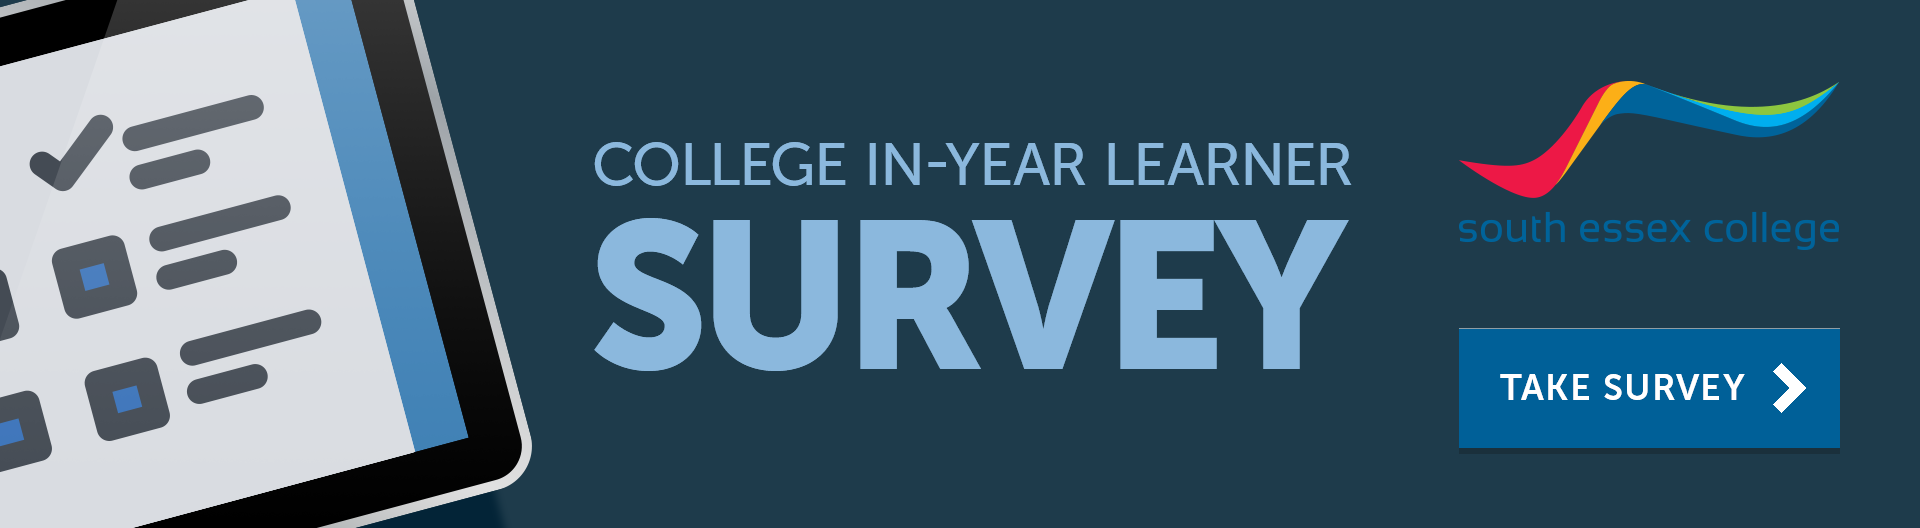 Collect in-year learner survey